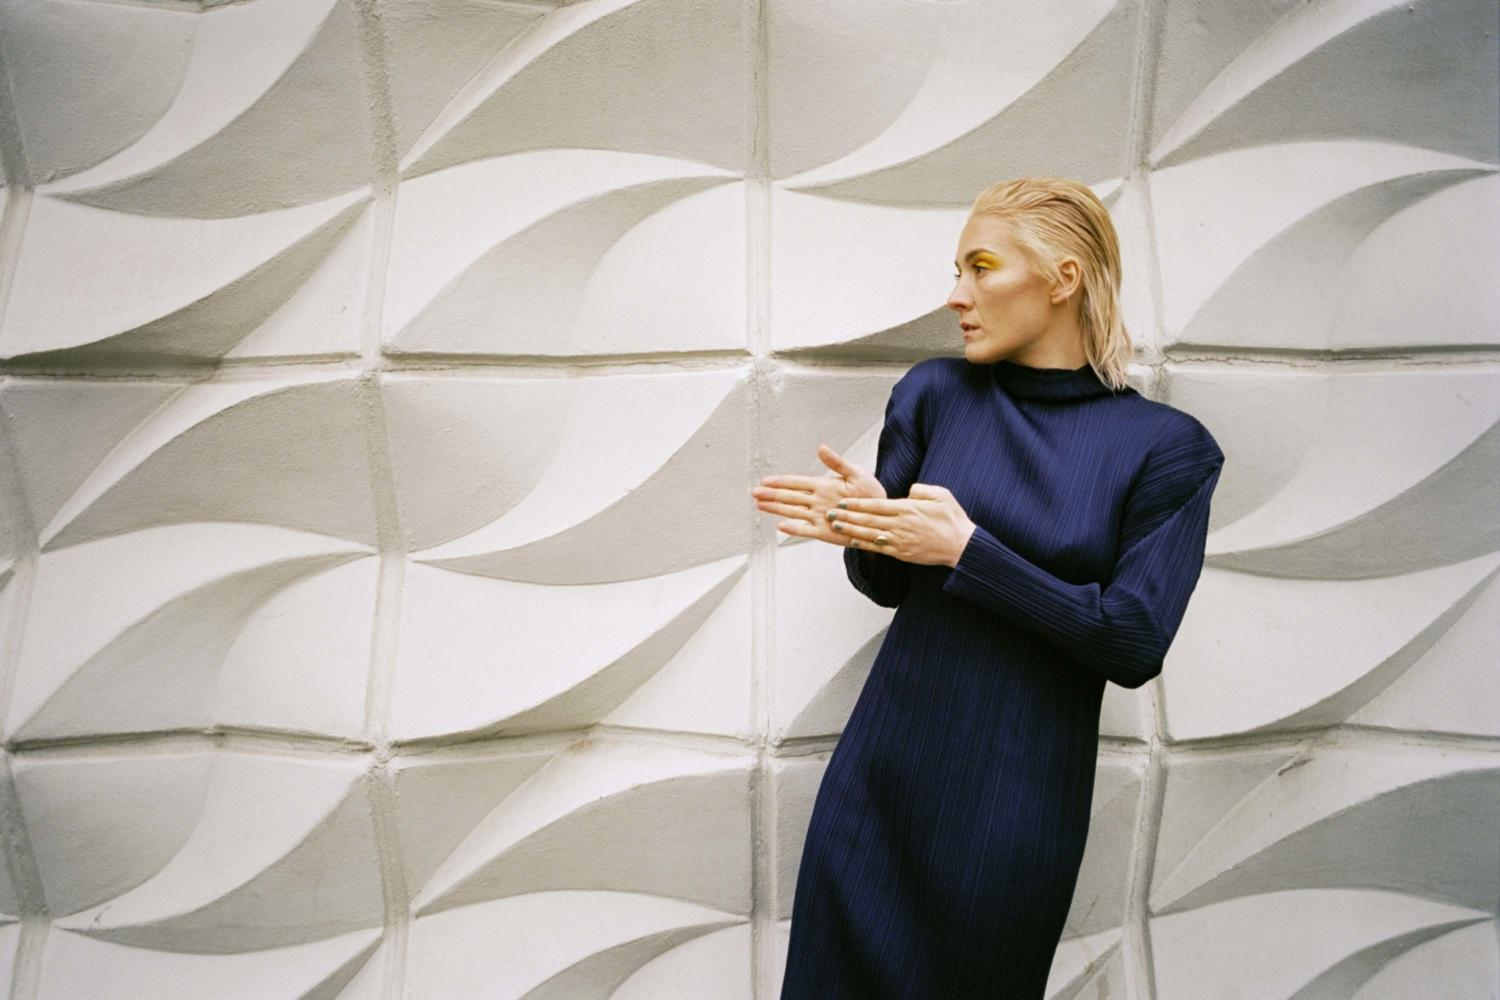 Cate Le Bon airs new track 'The Light'